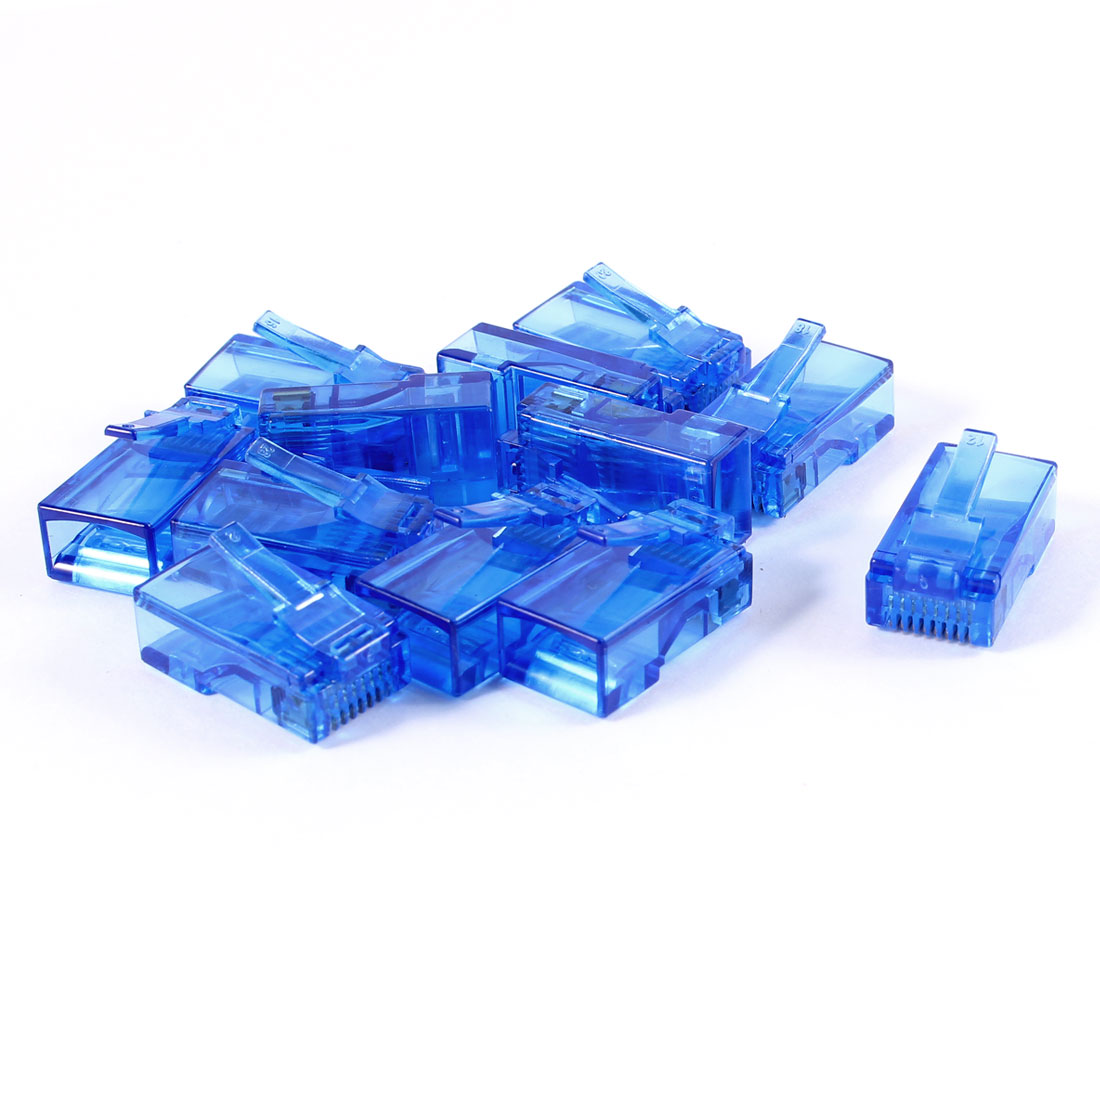 12 Pcs Dark Blue Plastic Shell RJ45 8P8C Modular Jack End Network Connector